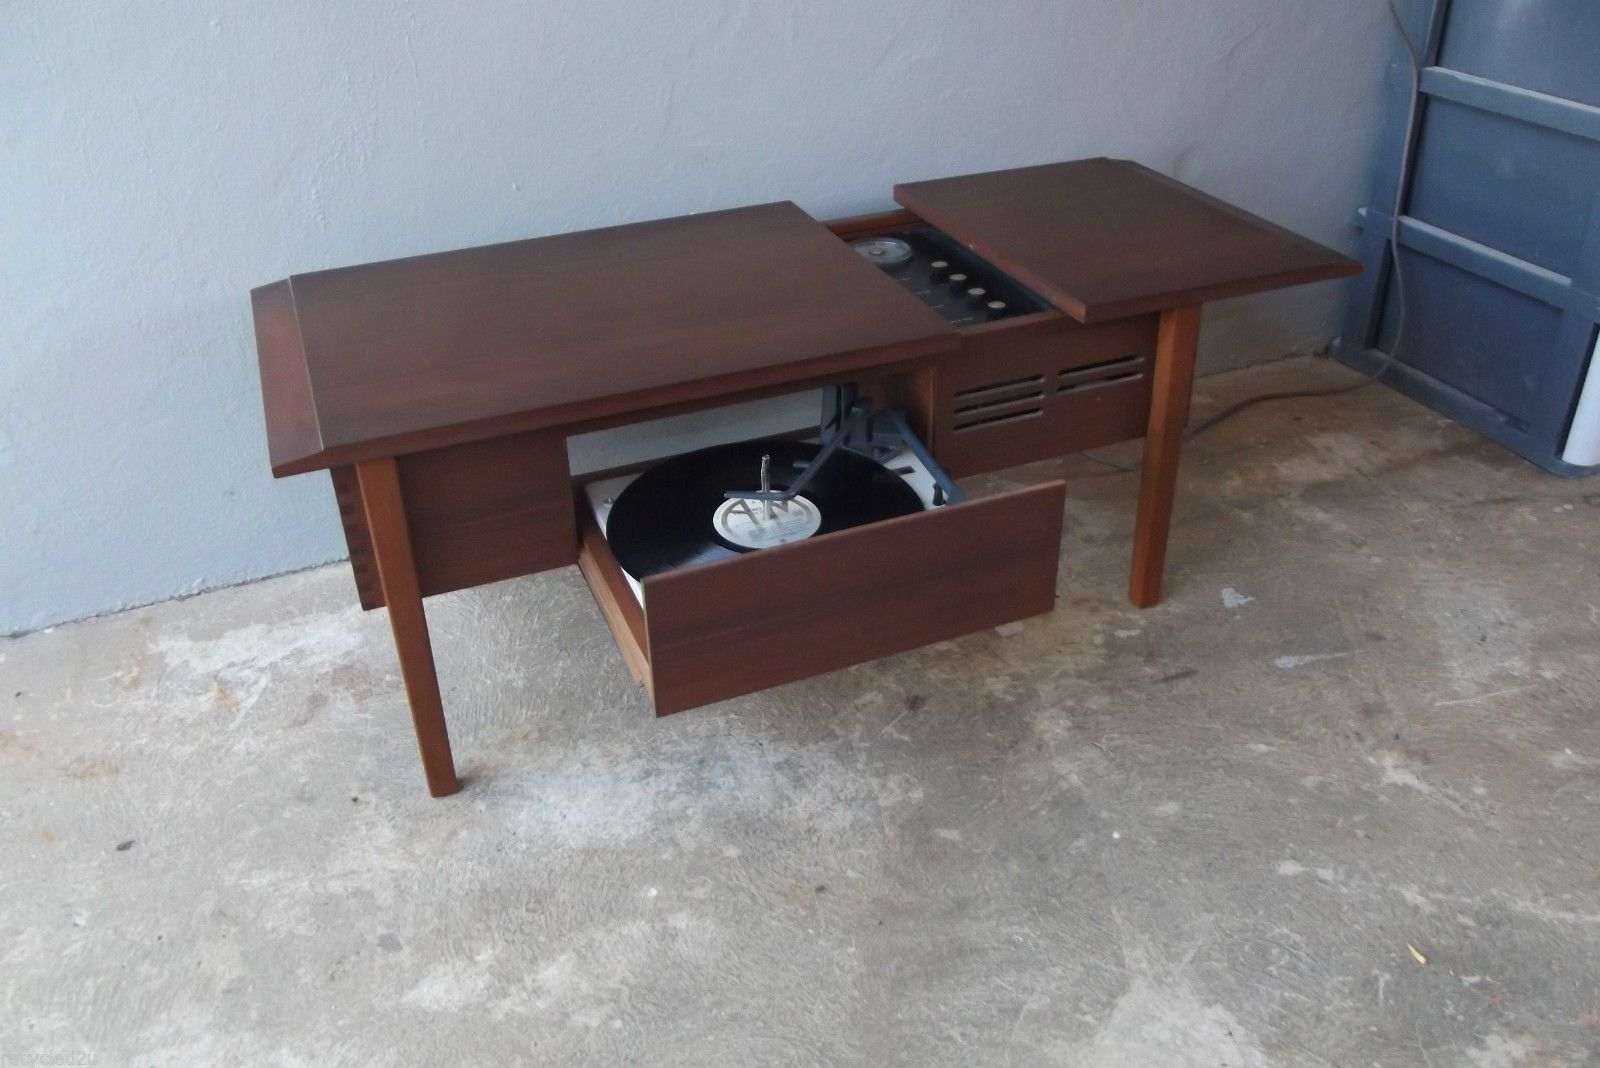 Retro Danish Designed AWA Stereogram Record Player Coffee ...